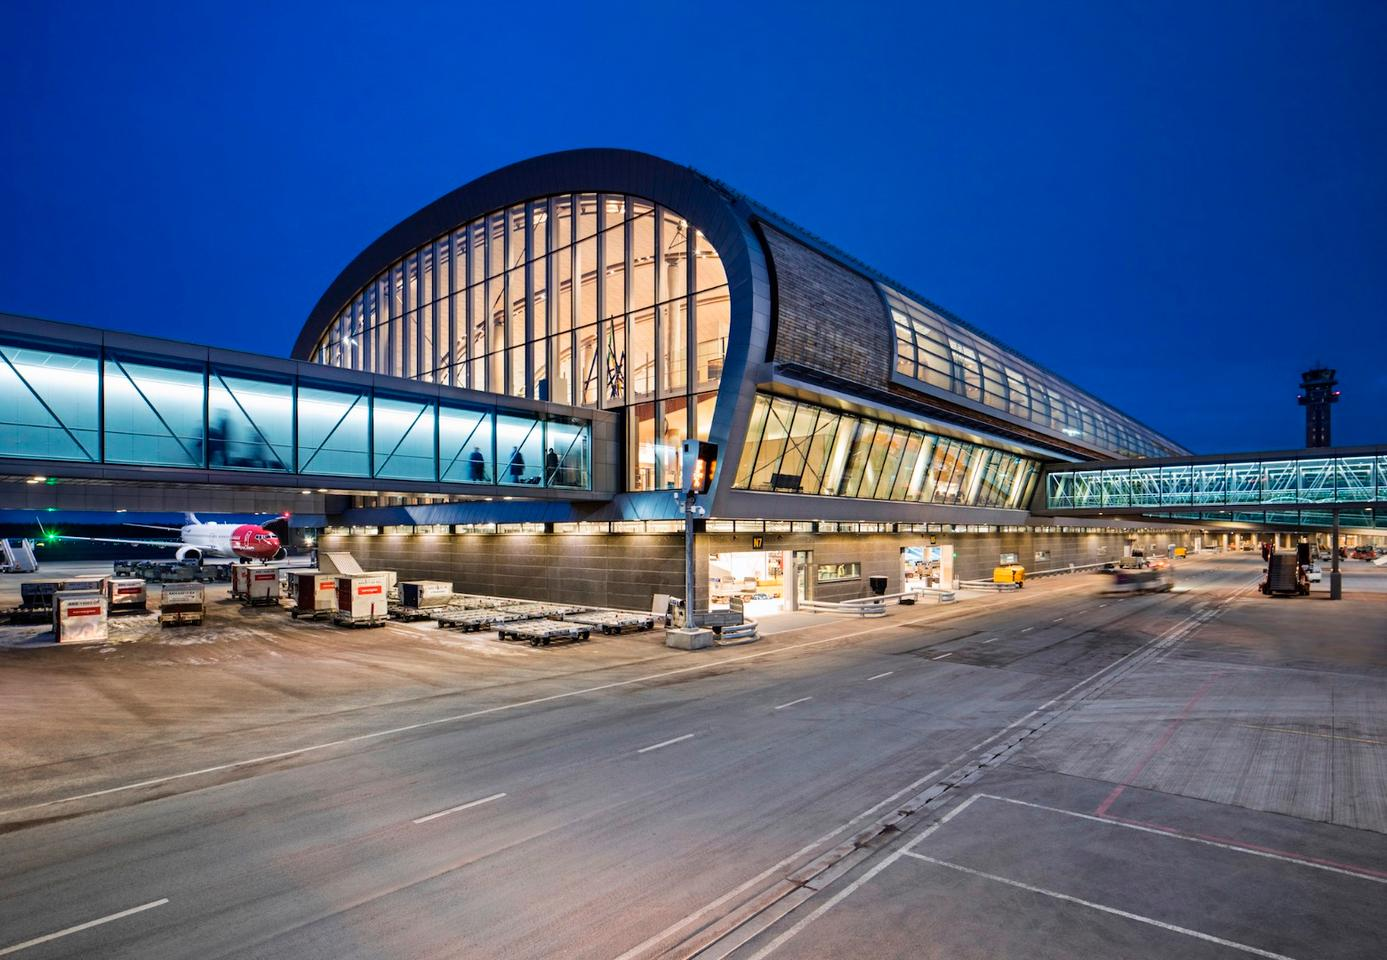 Nordic –Office of Architecturedesigned Oslo Airport back in 1998 and the new extensionofficially openedthis week